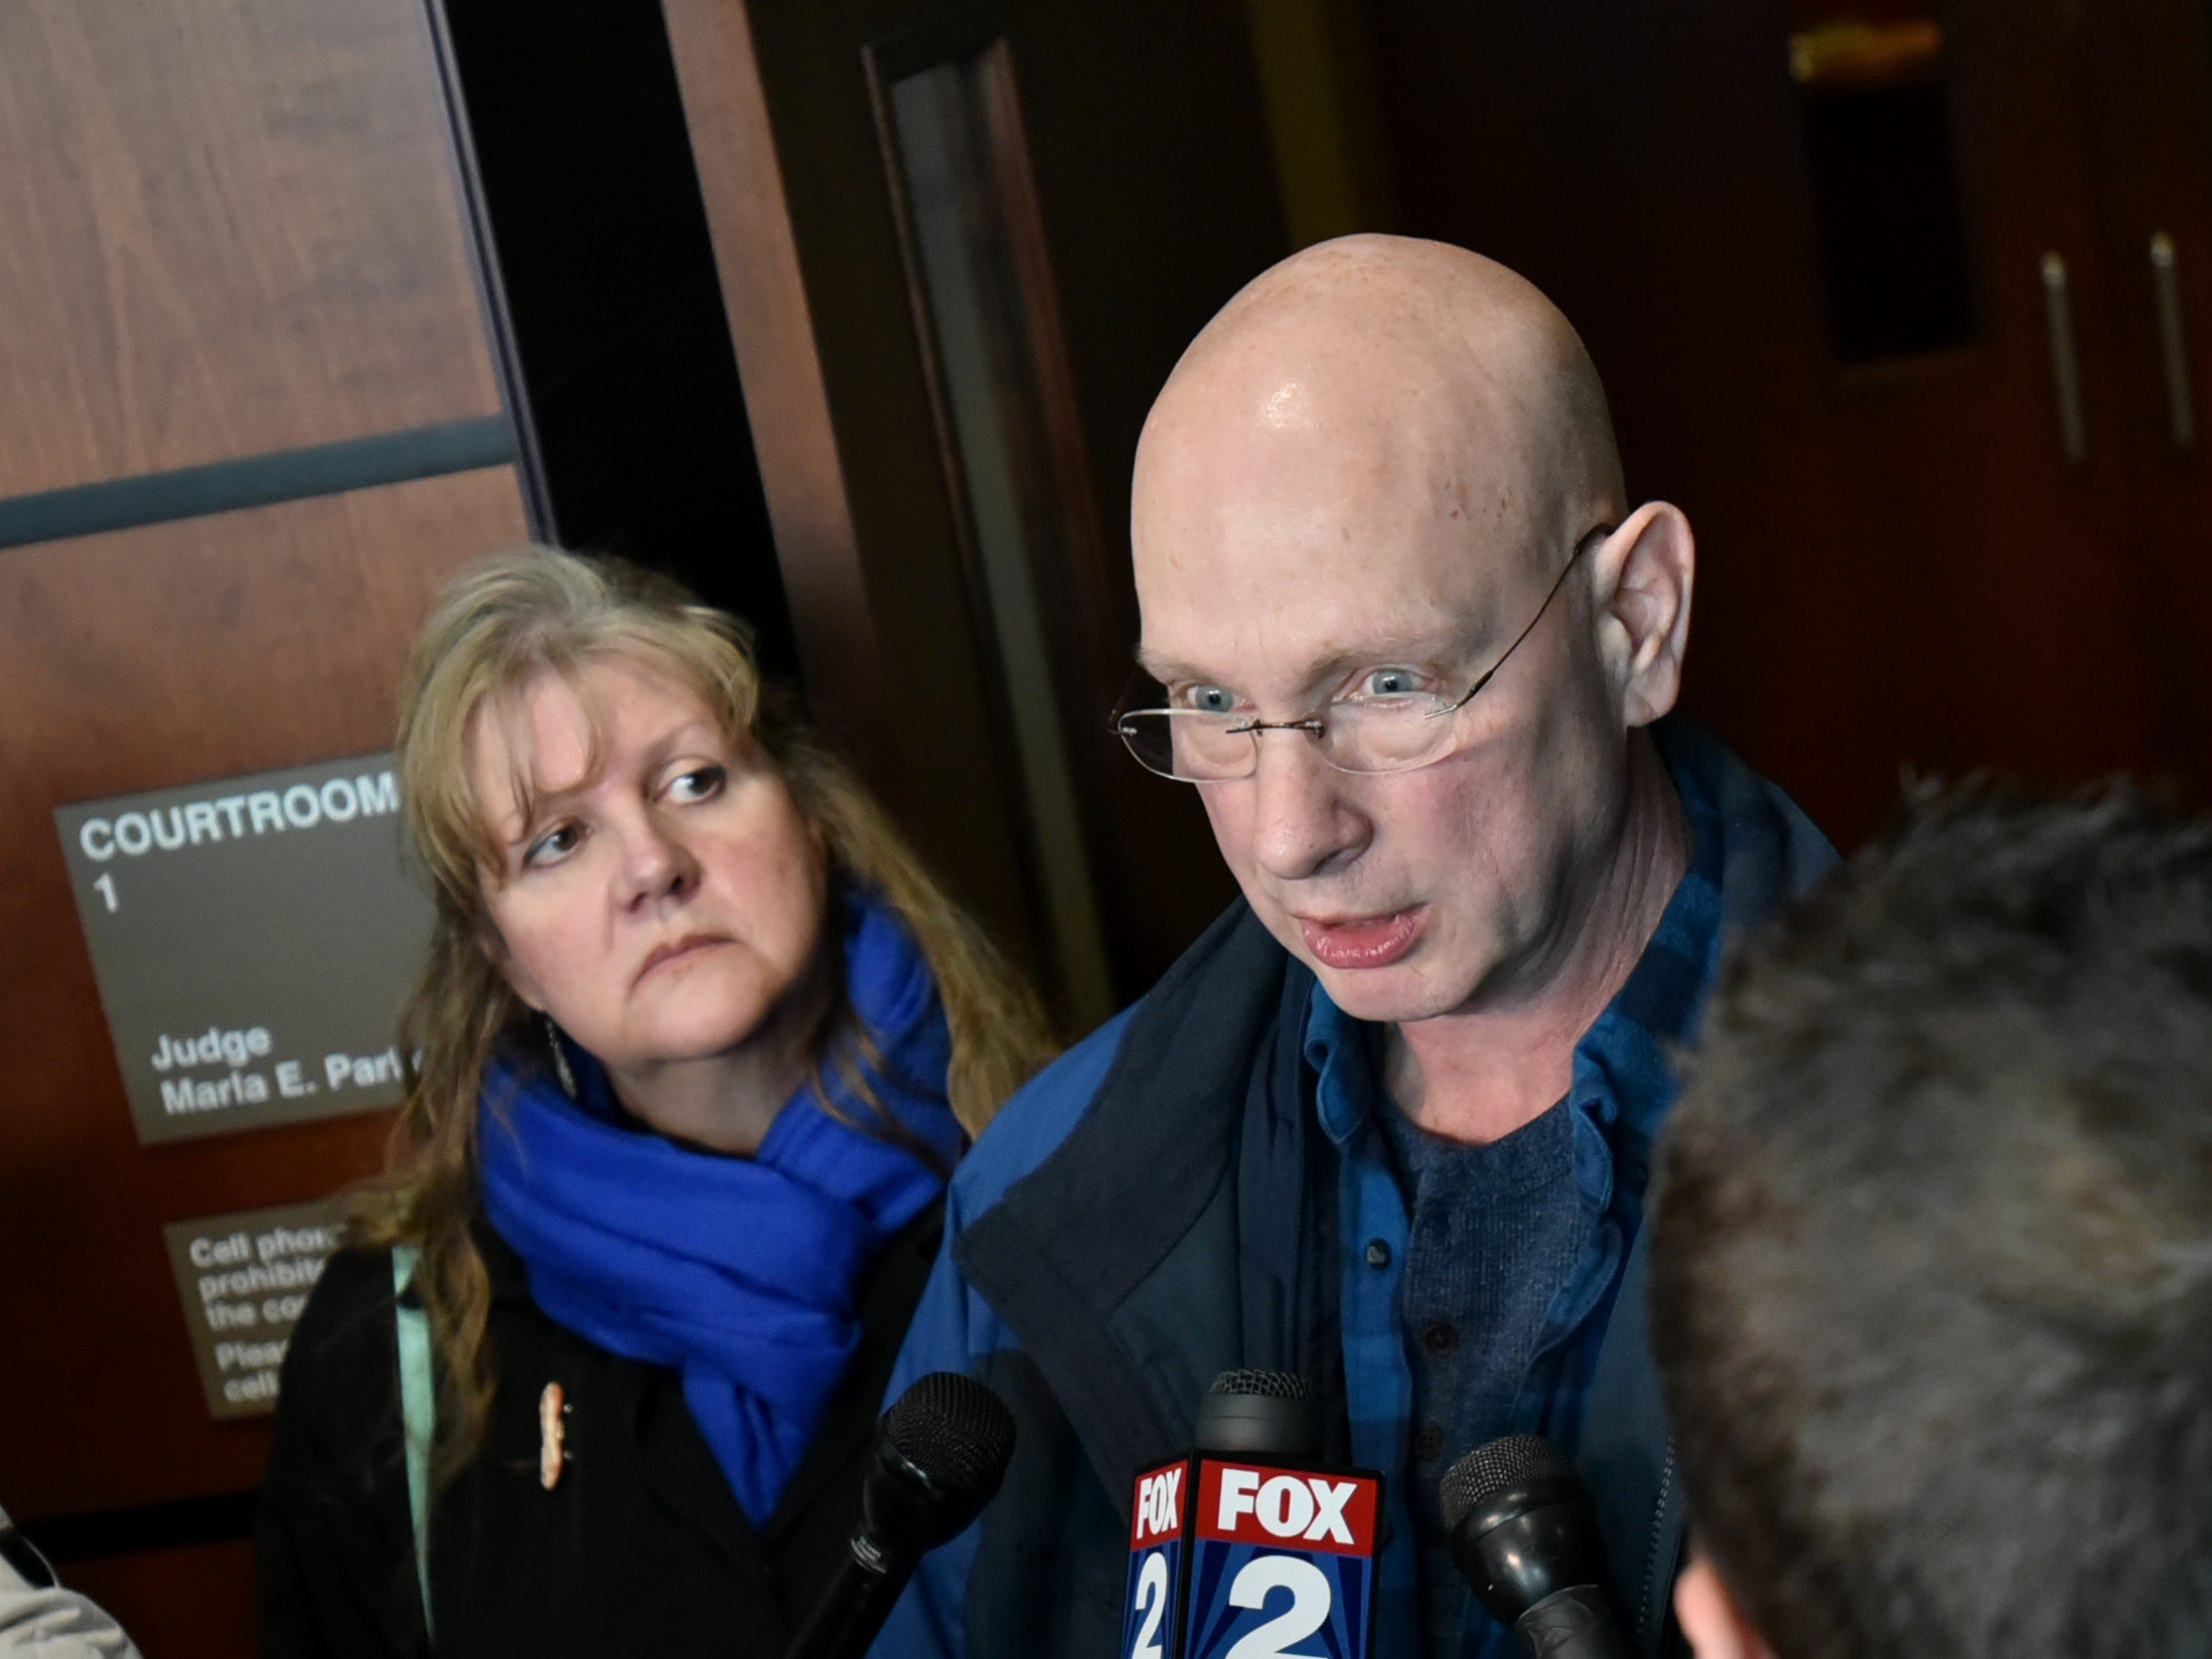 Richard Stislicki and his wife Ann spoke to the media after Floyd Galloway Jr. was arraigned in the First Degree murder of their daughter Danielle Stislicki on March 6 at the 47th District Court in Farmington Hills.